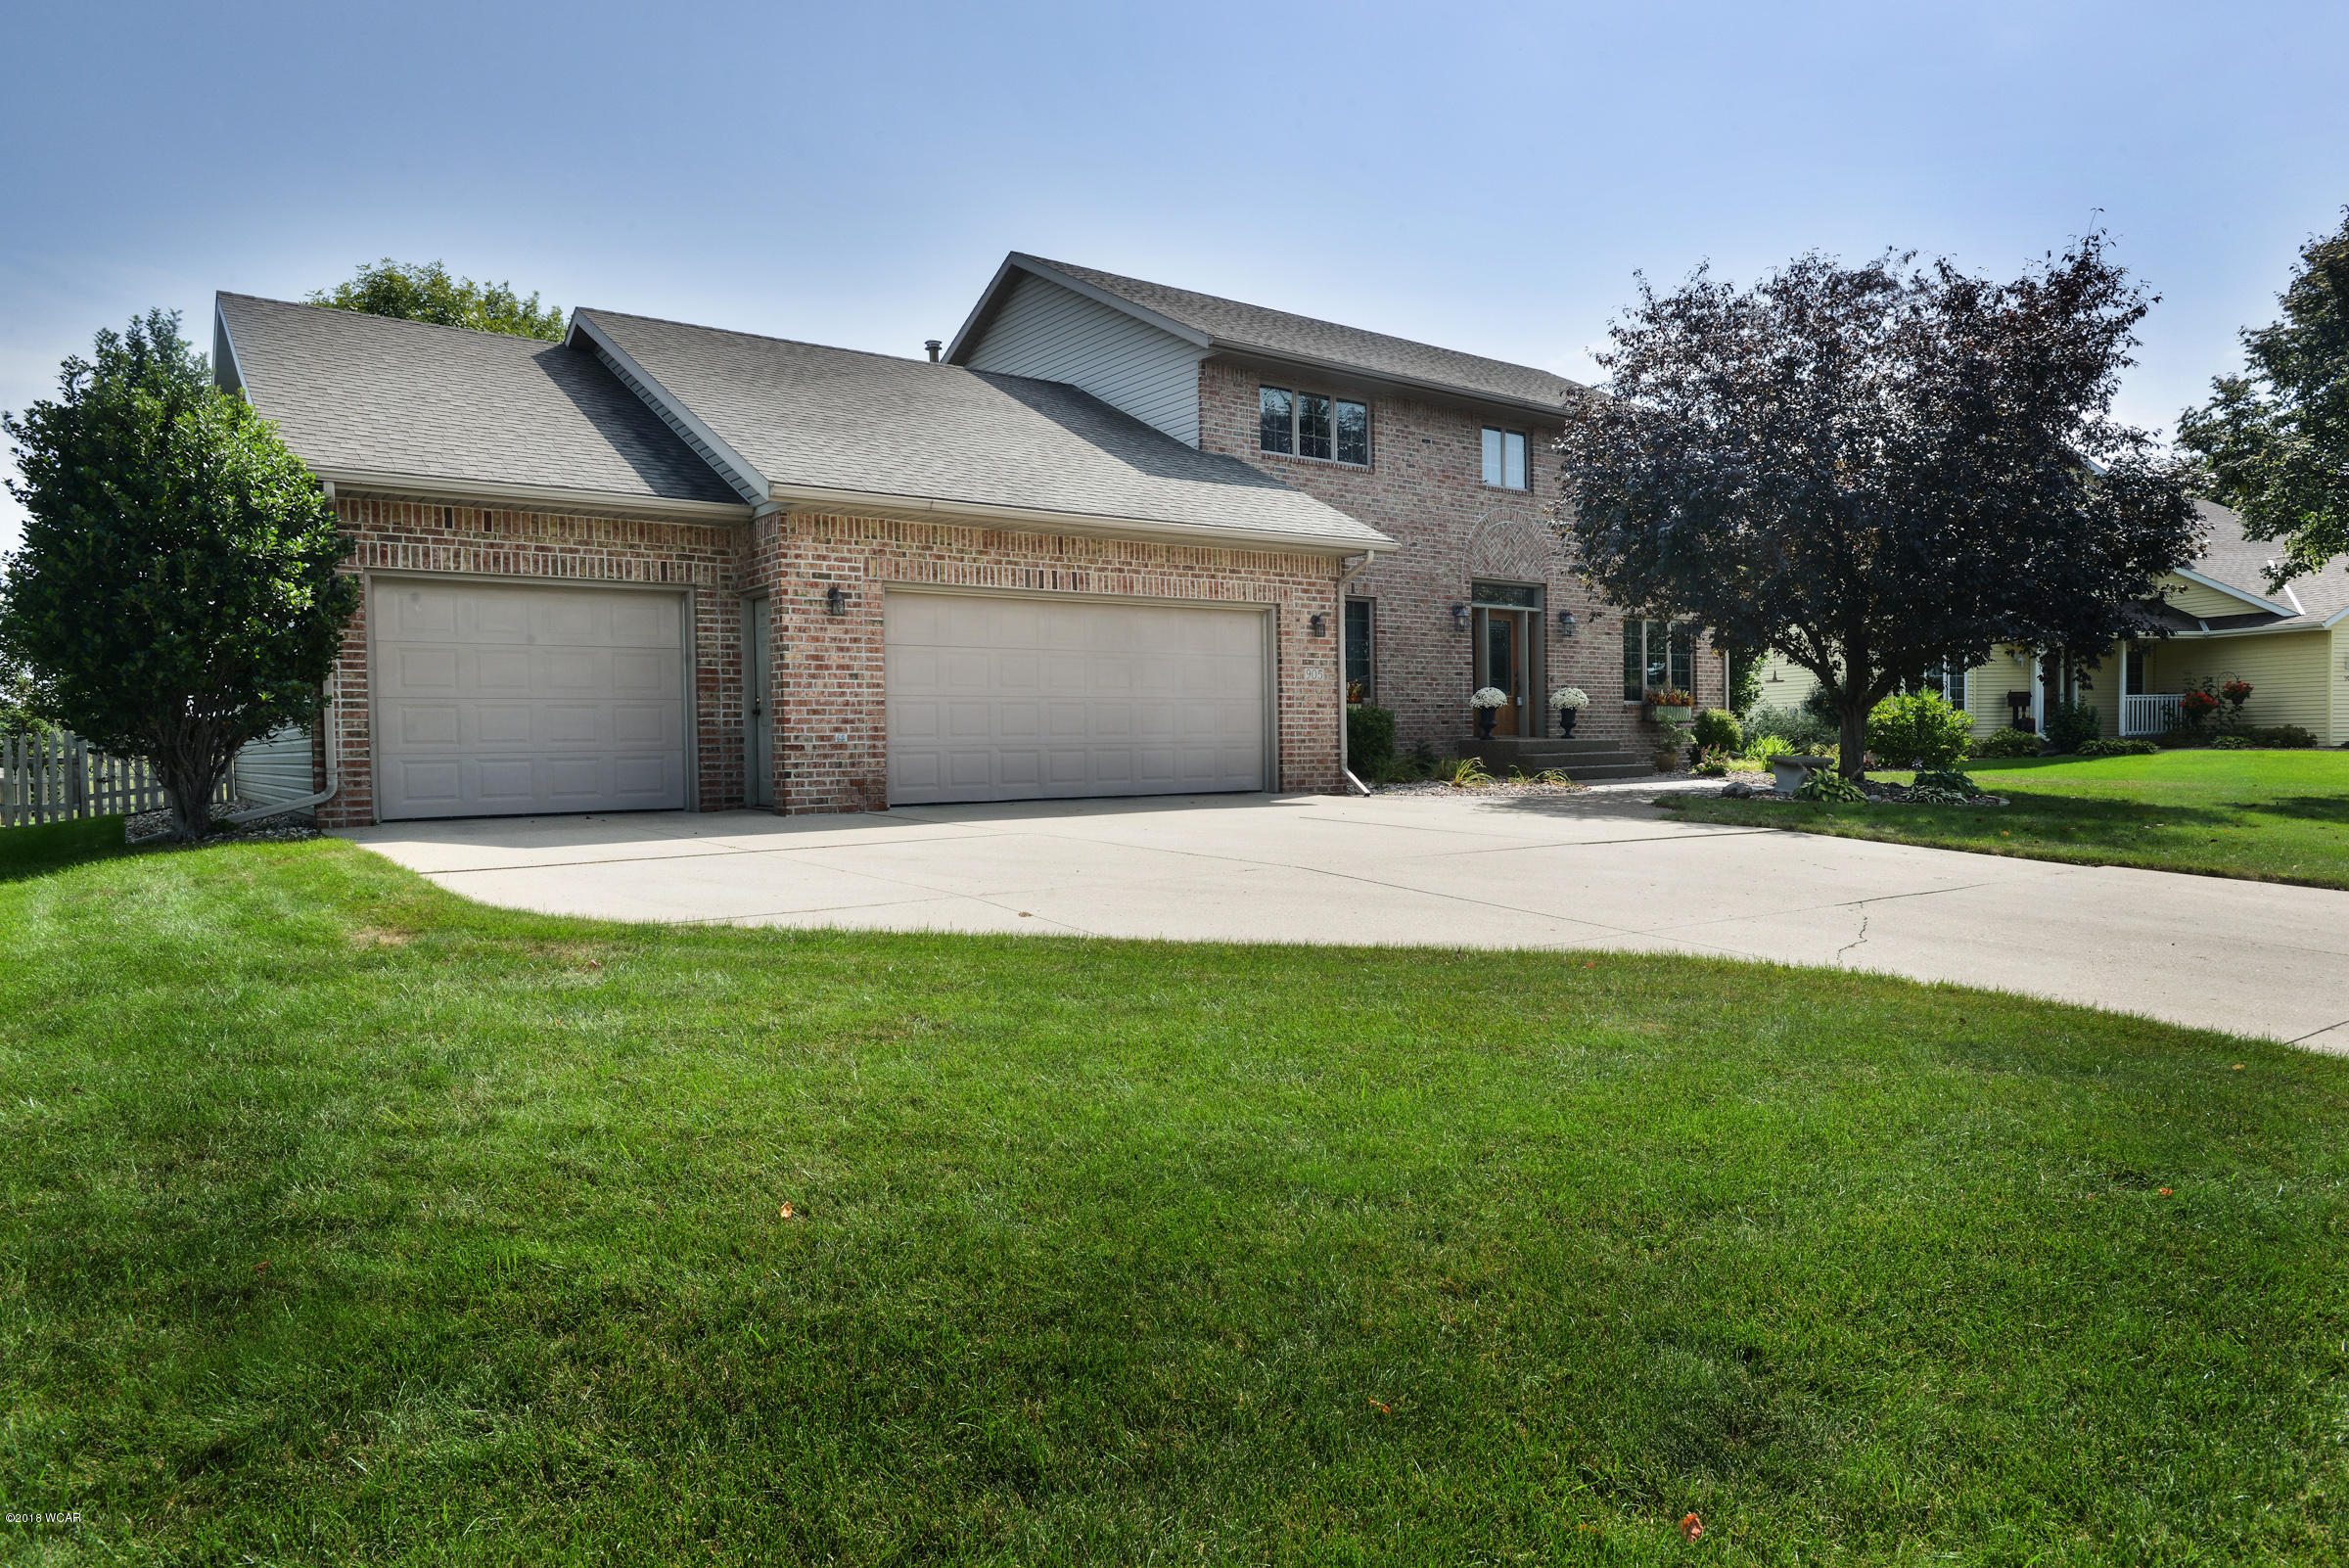 905 24th Street,Willmar,4 Bedrooms Bedrooms,4 BathroomsBathrooms,Single Family,24th Street,6032278